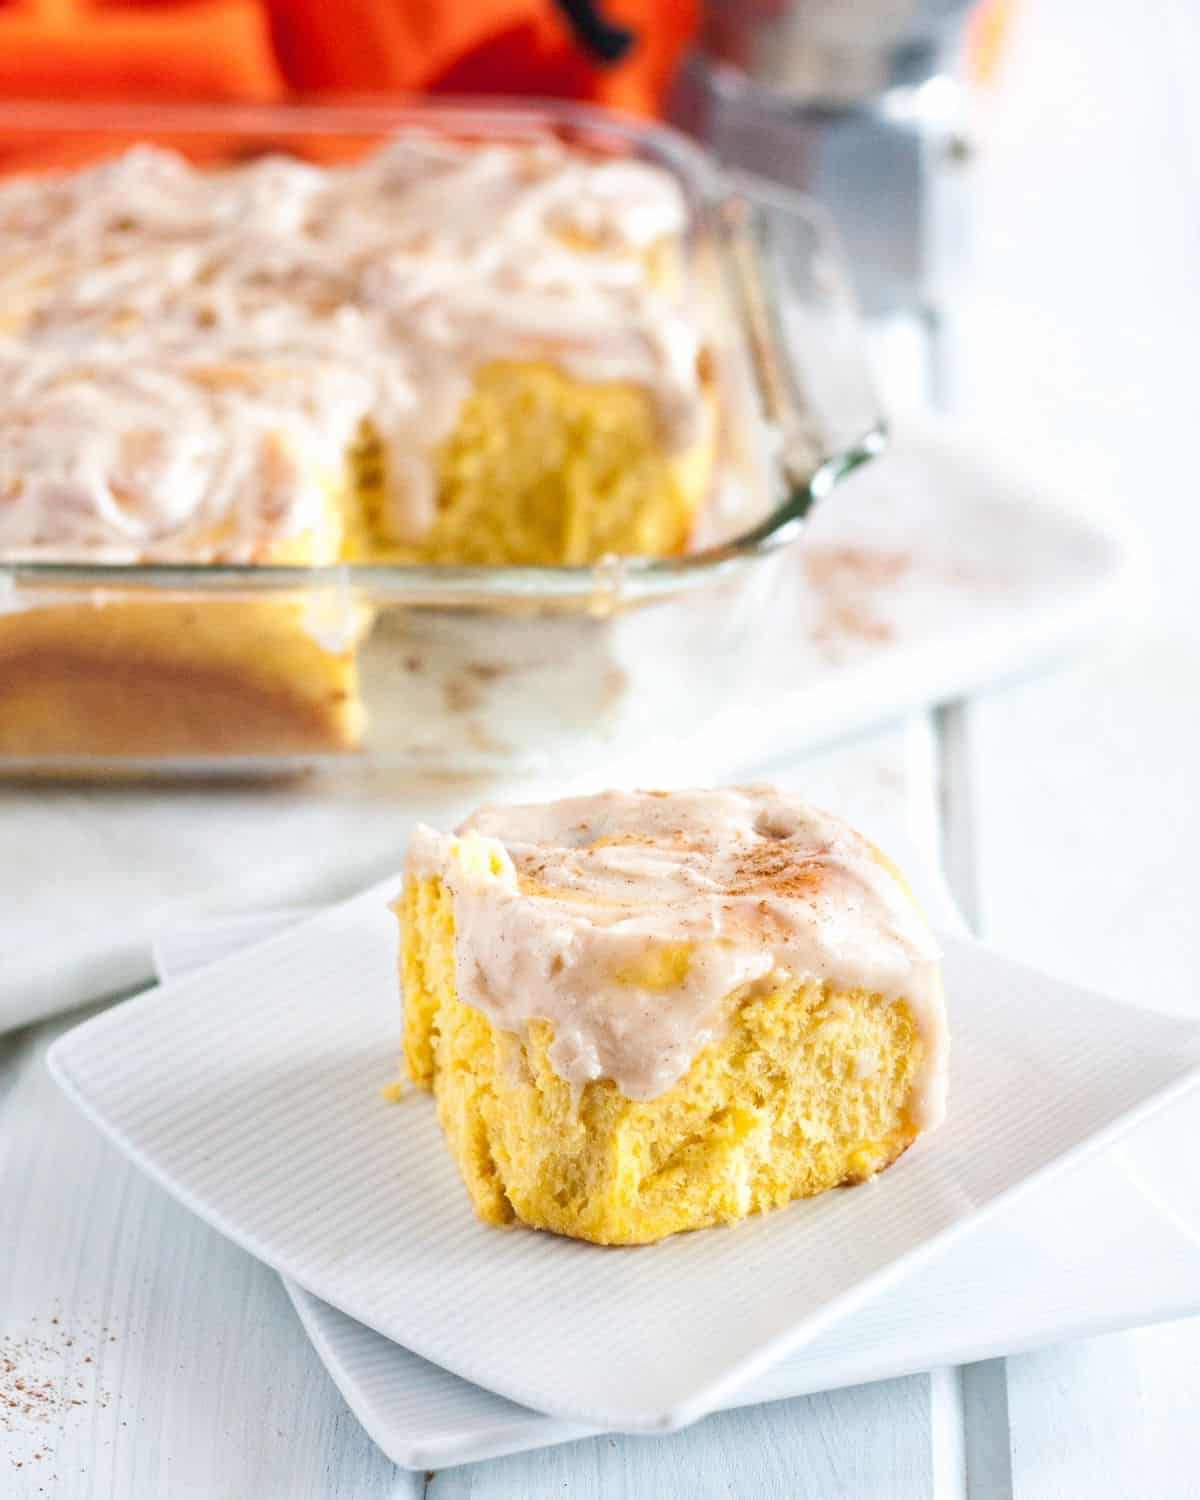 Prep these from scratch pumpkin cinnamon rolls the night before and bake the next morning for an amazing breakfast treat! With pumpkin in both the batter and filling, this may just be the only pumpkin cinnamon roll recipe you'll need!